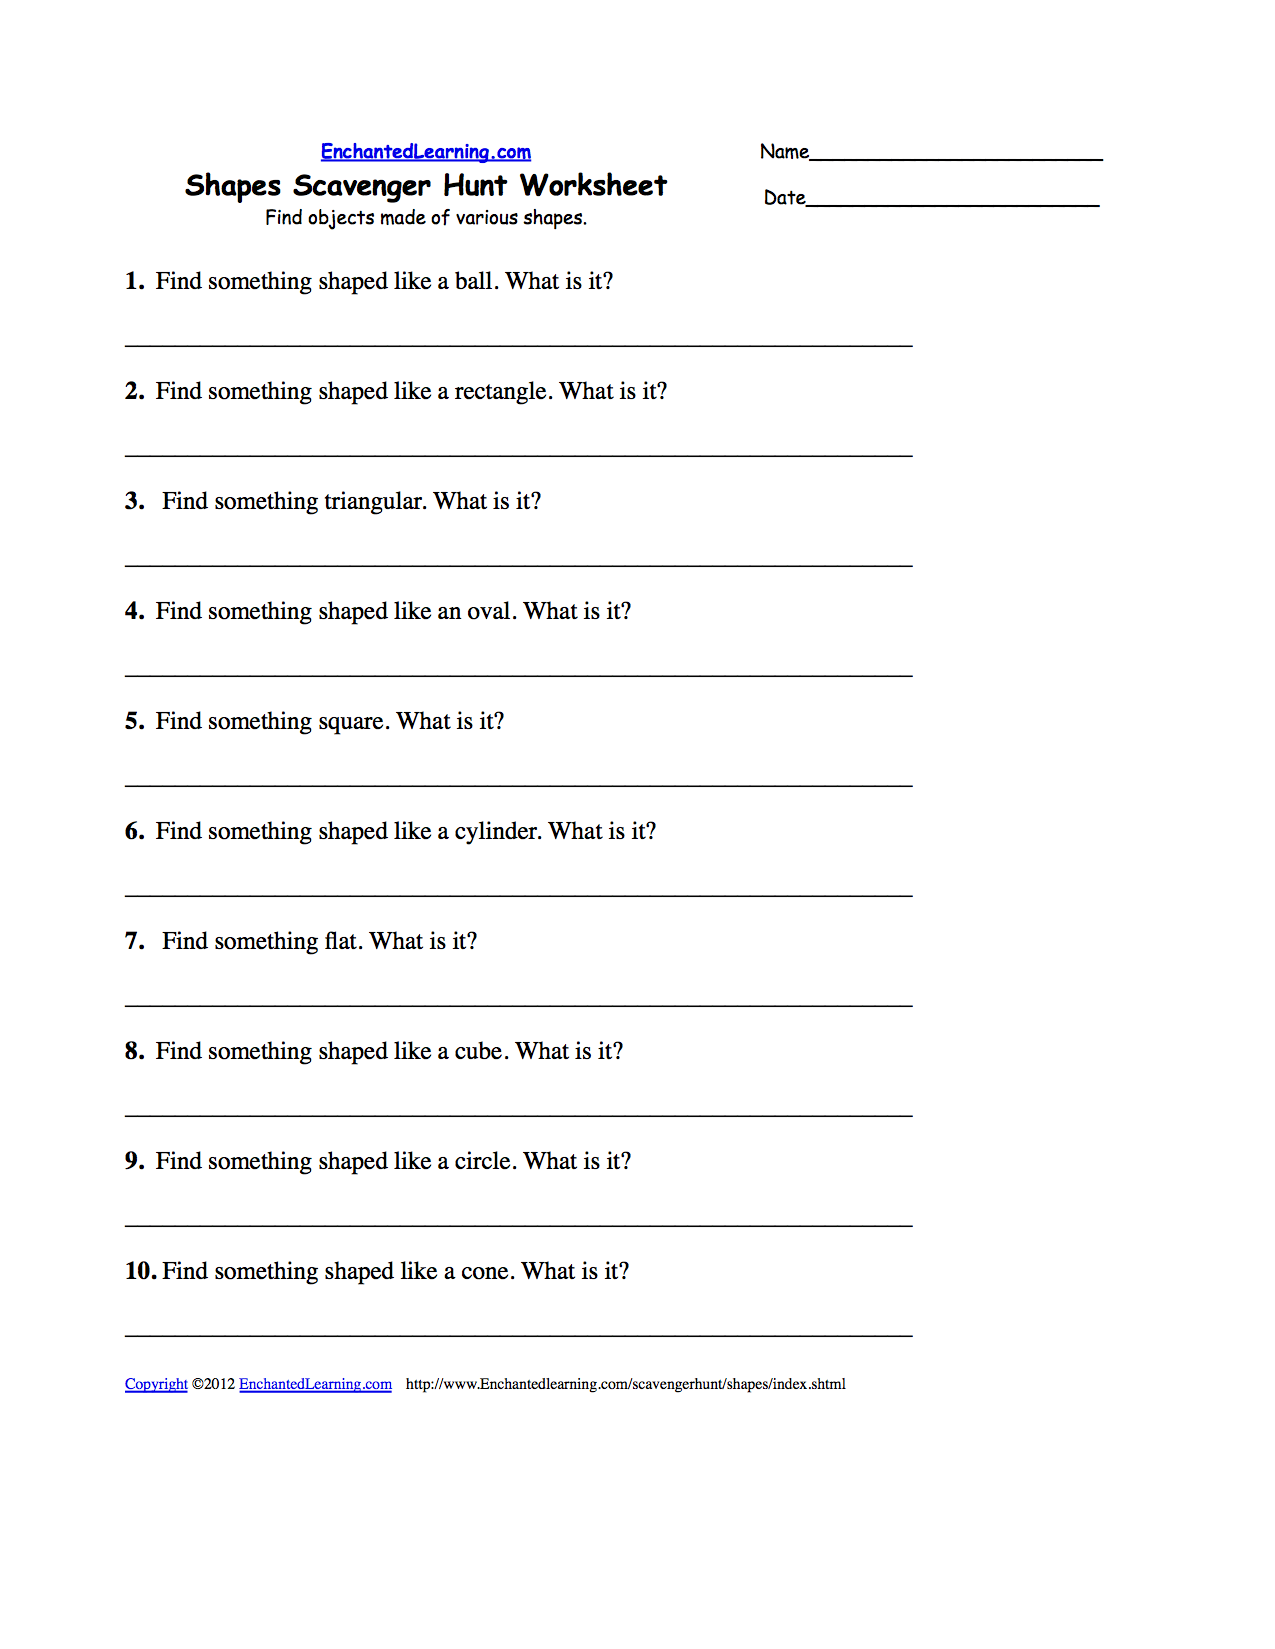 Textbook Scavenger Hunt Worksheet English